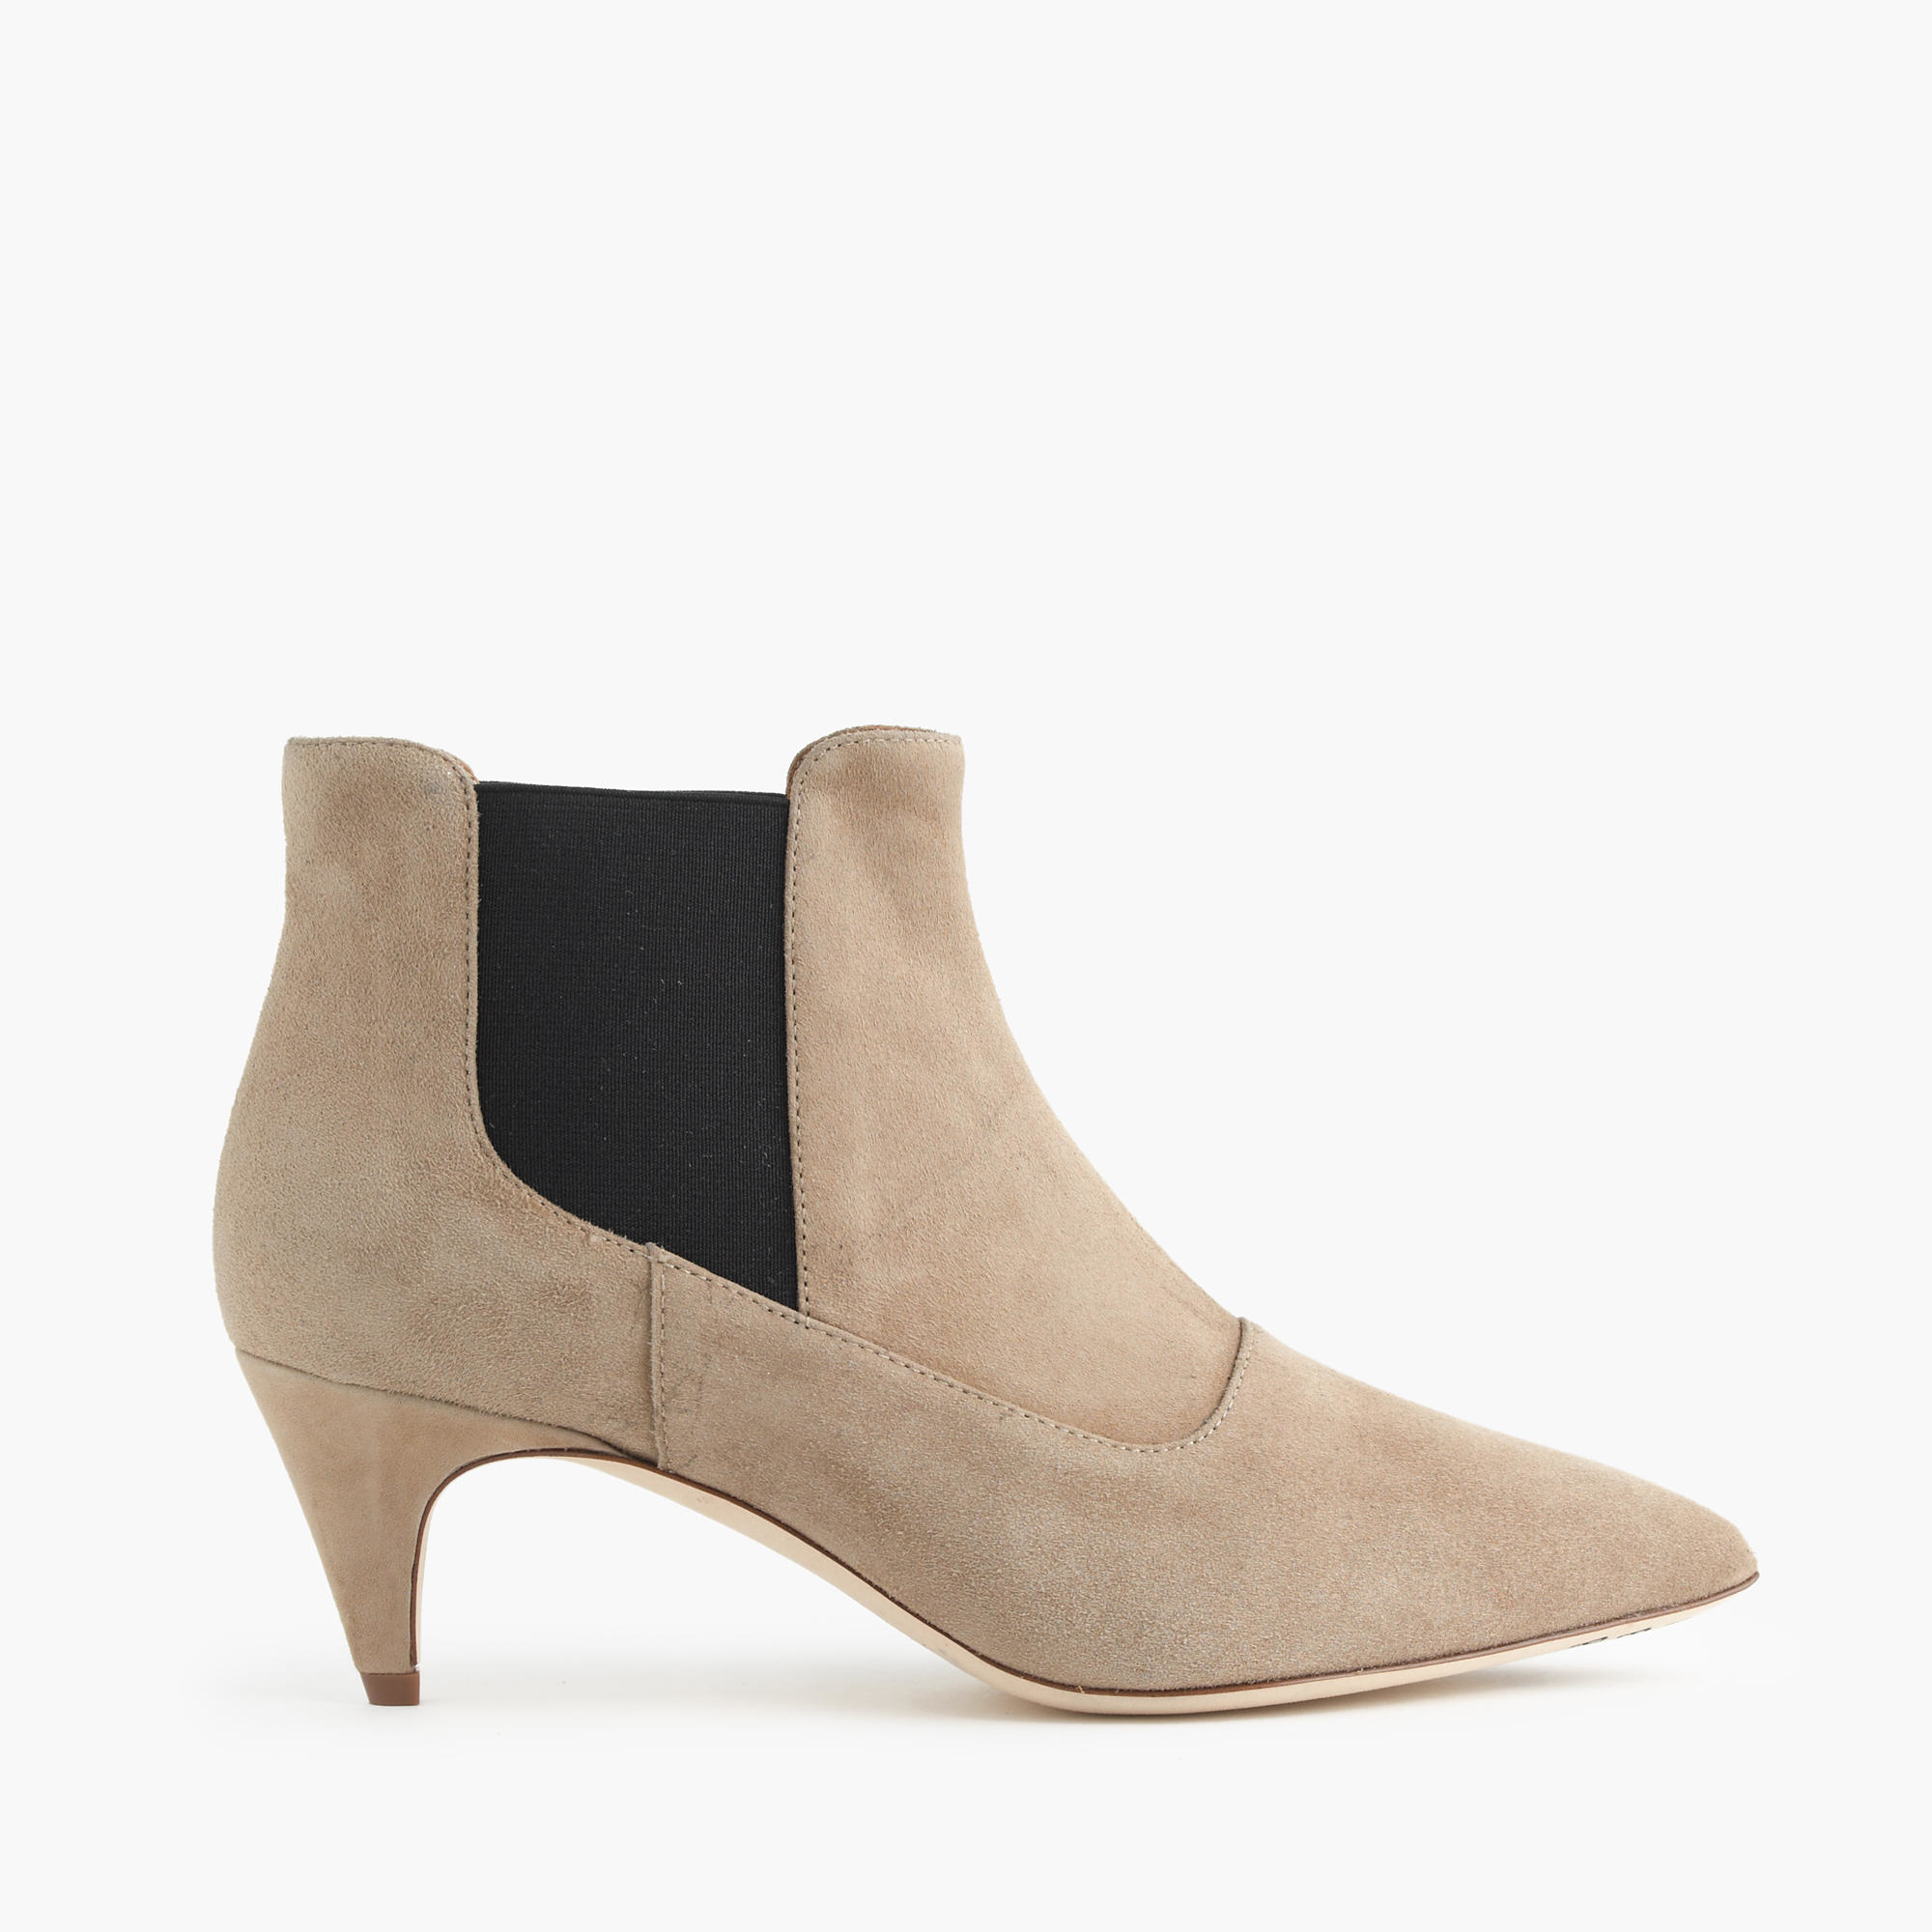 suede kitten heel chelsea boots in beige pale umber lyst. Black Bedroom Furniture Sets. Home Design Ideas